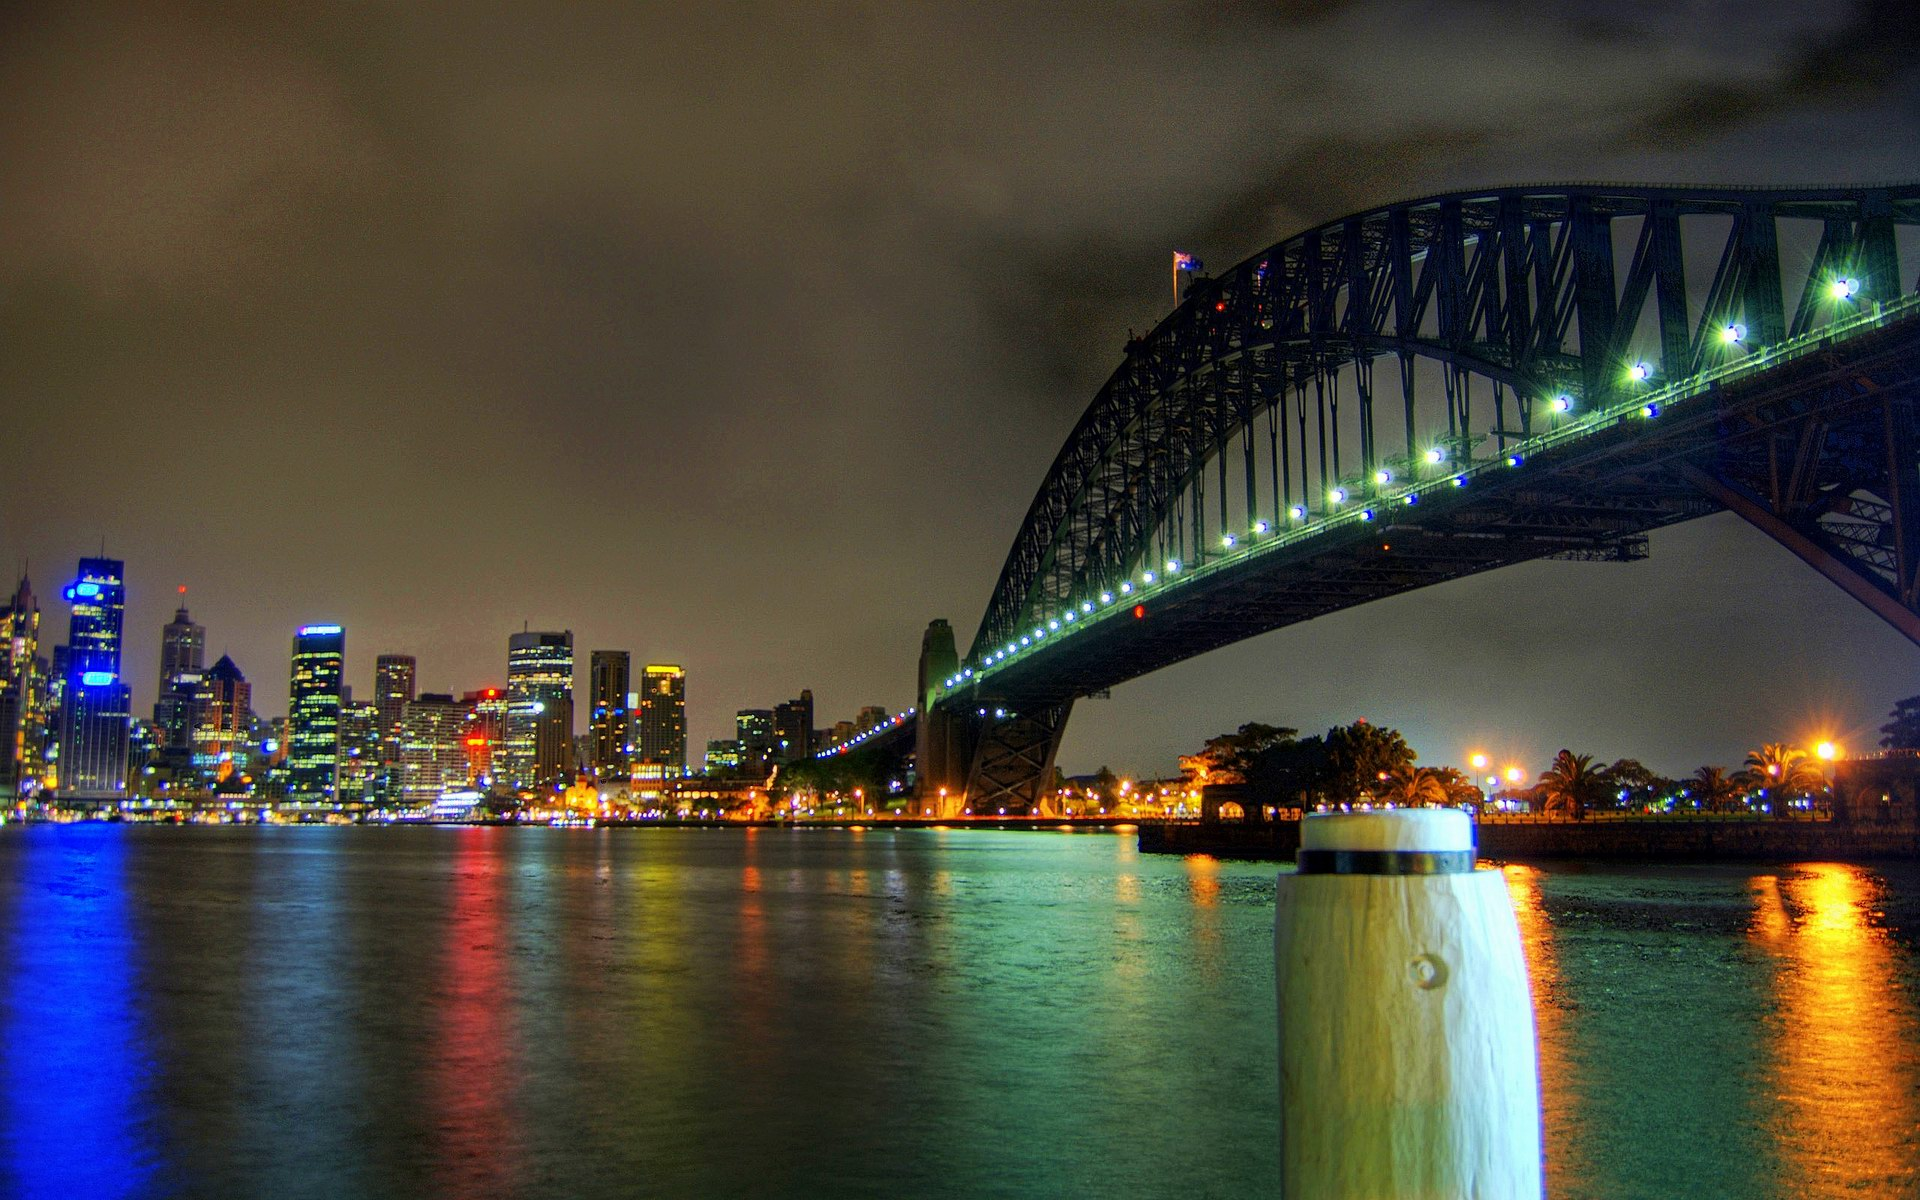 Beautiful Wallpaper Night Laptop - high-resolution-sydney-skyscraping-harbour-bridge-nice-majestic-wallpapers-free-hd-desktop-backgrounds-mobile-laptop-download  Photograph-252514.jpg